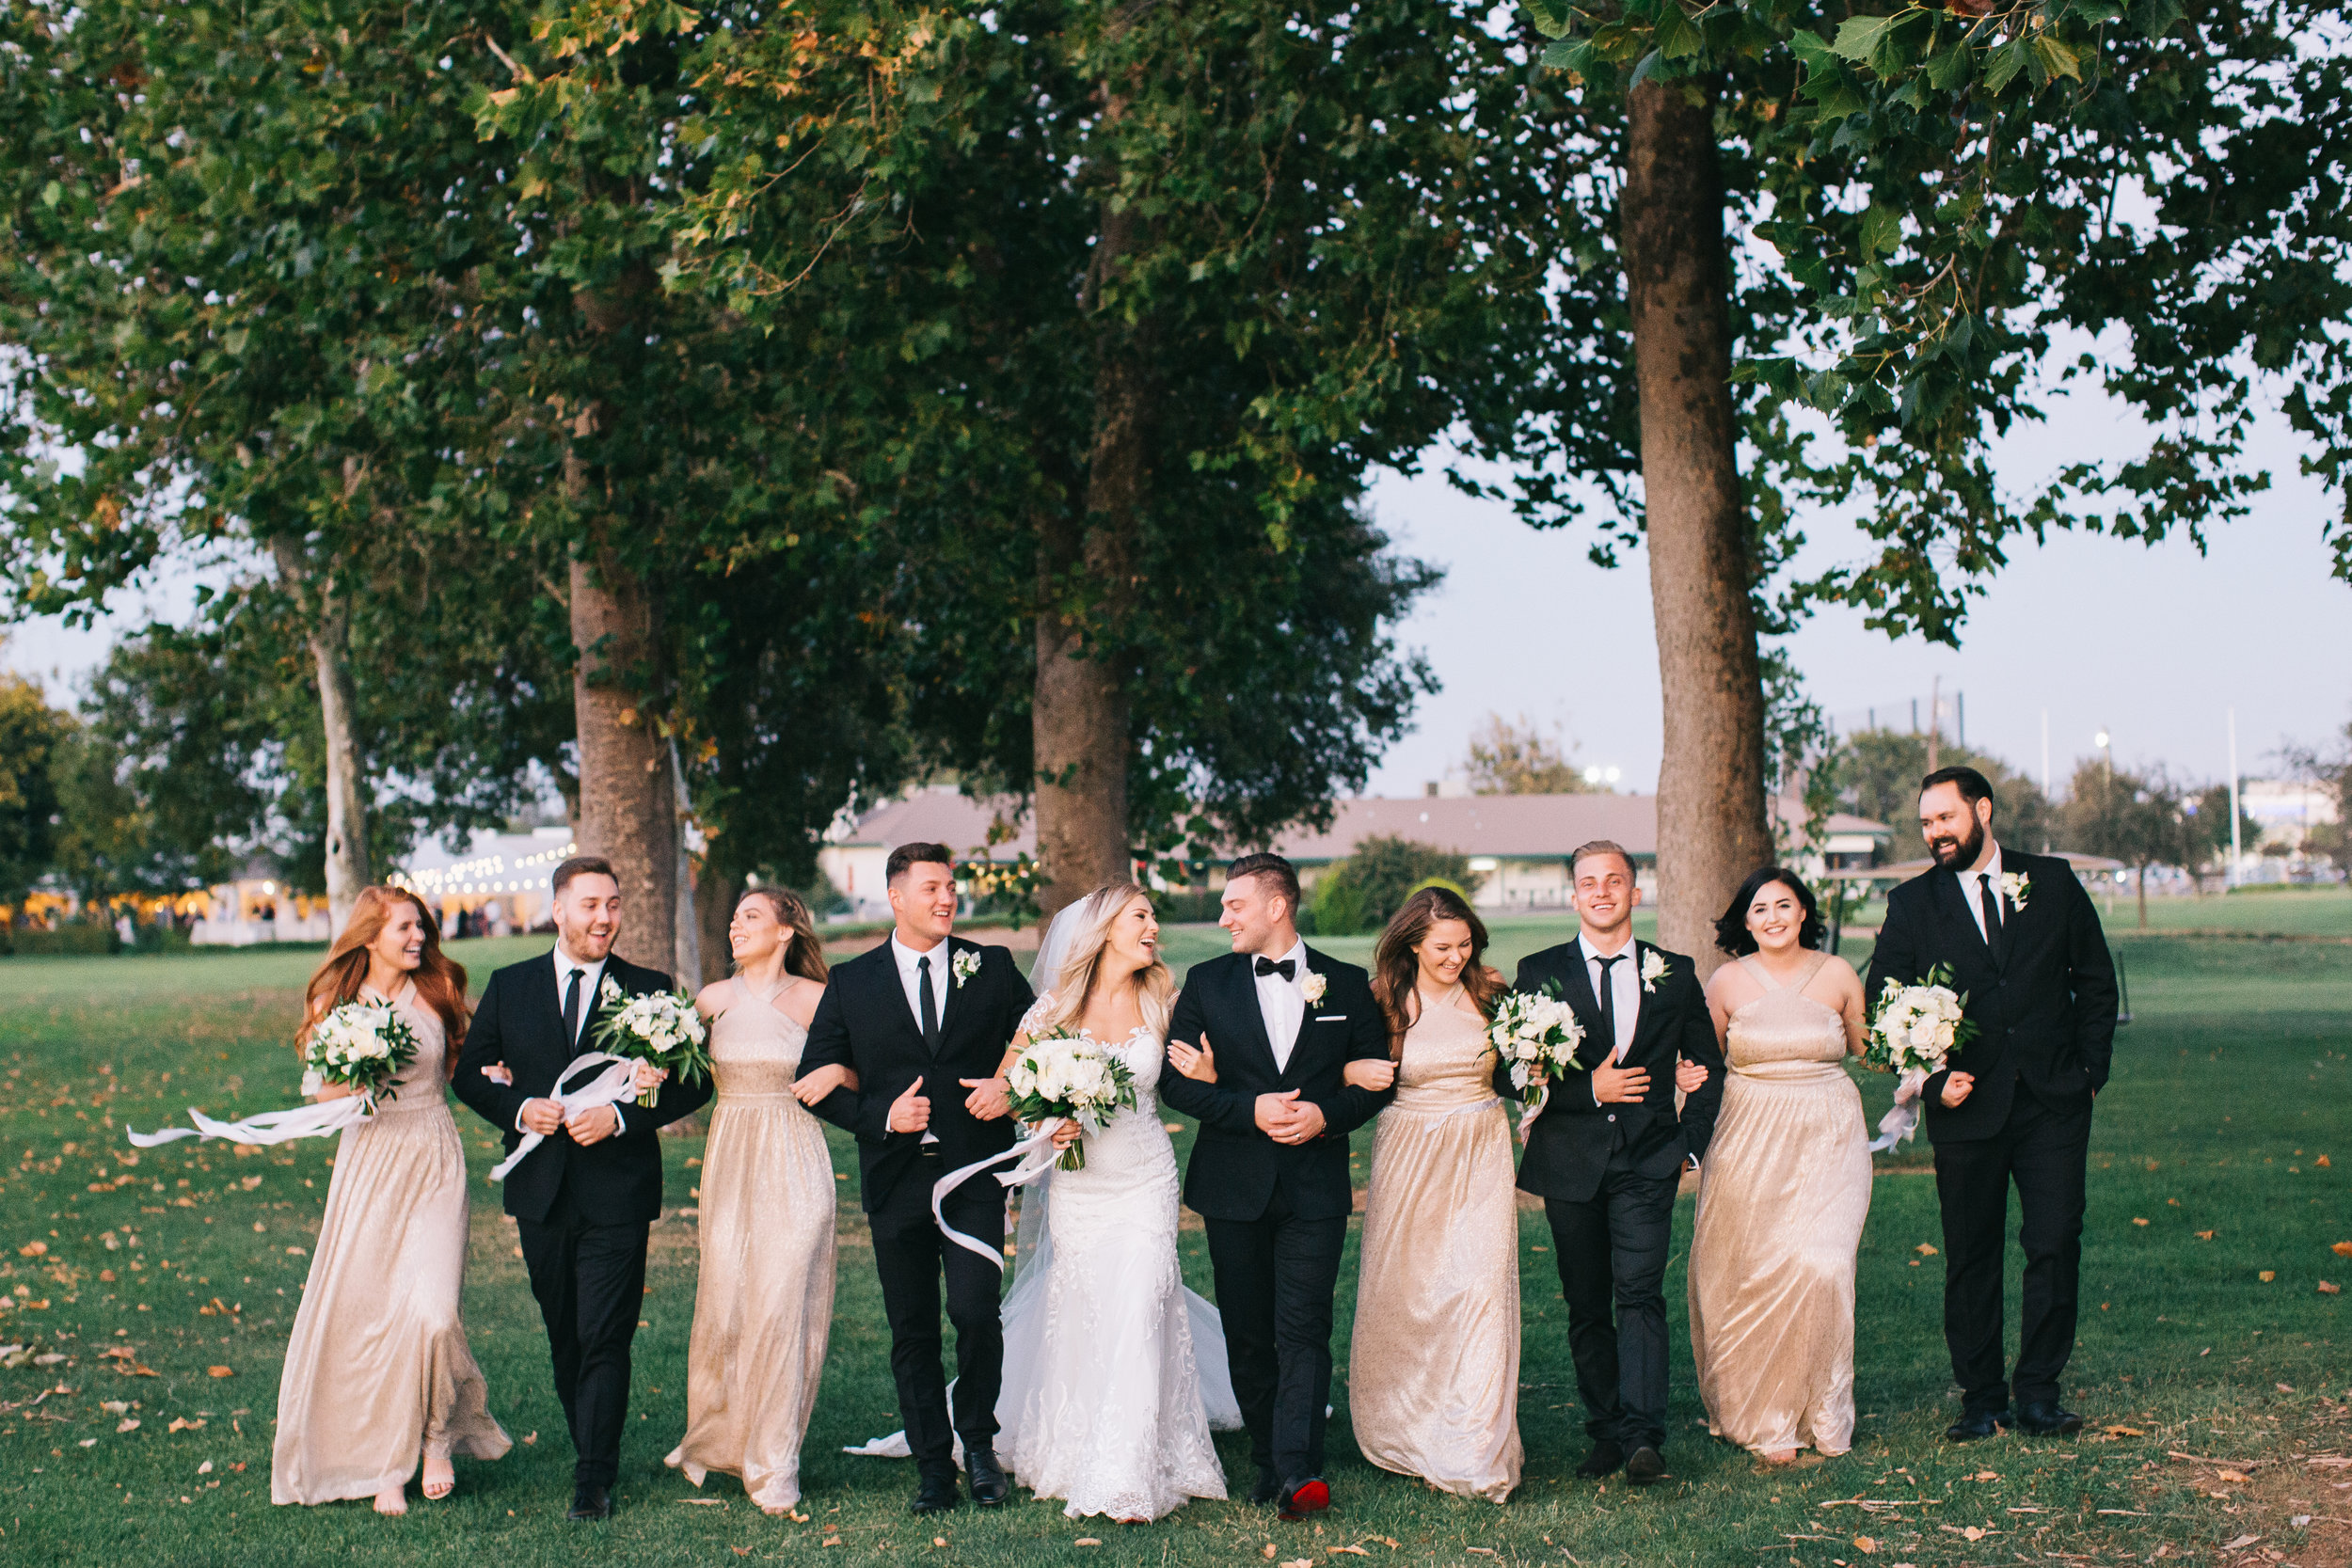 bridal_party_bouquets_boutonniere_silk_flowing_ribbon_violette_fleurs_anna_perevertaylo.jpg